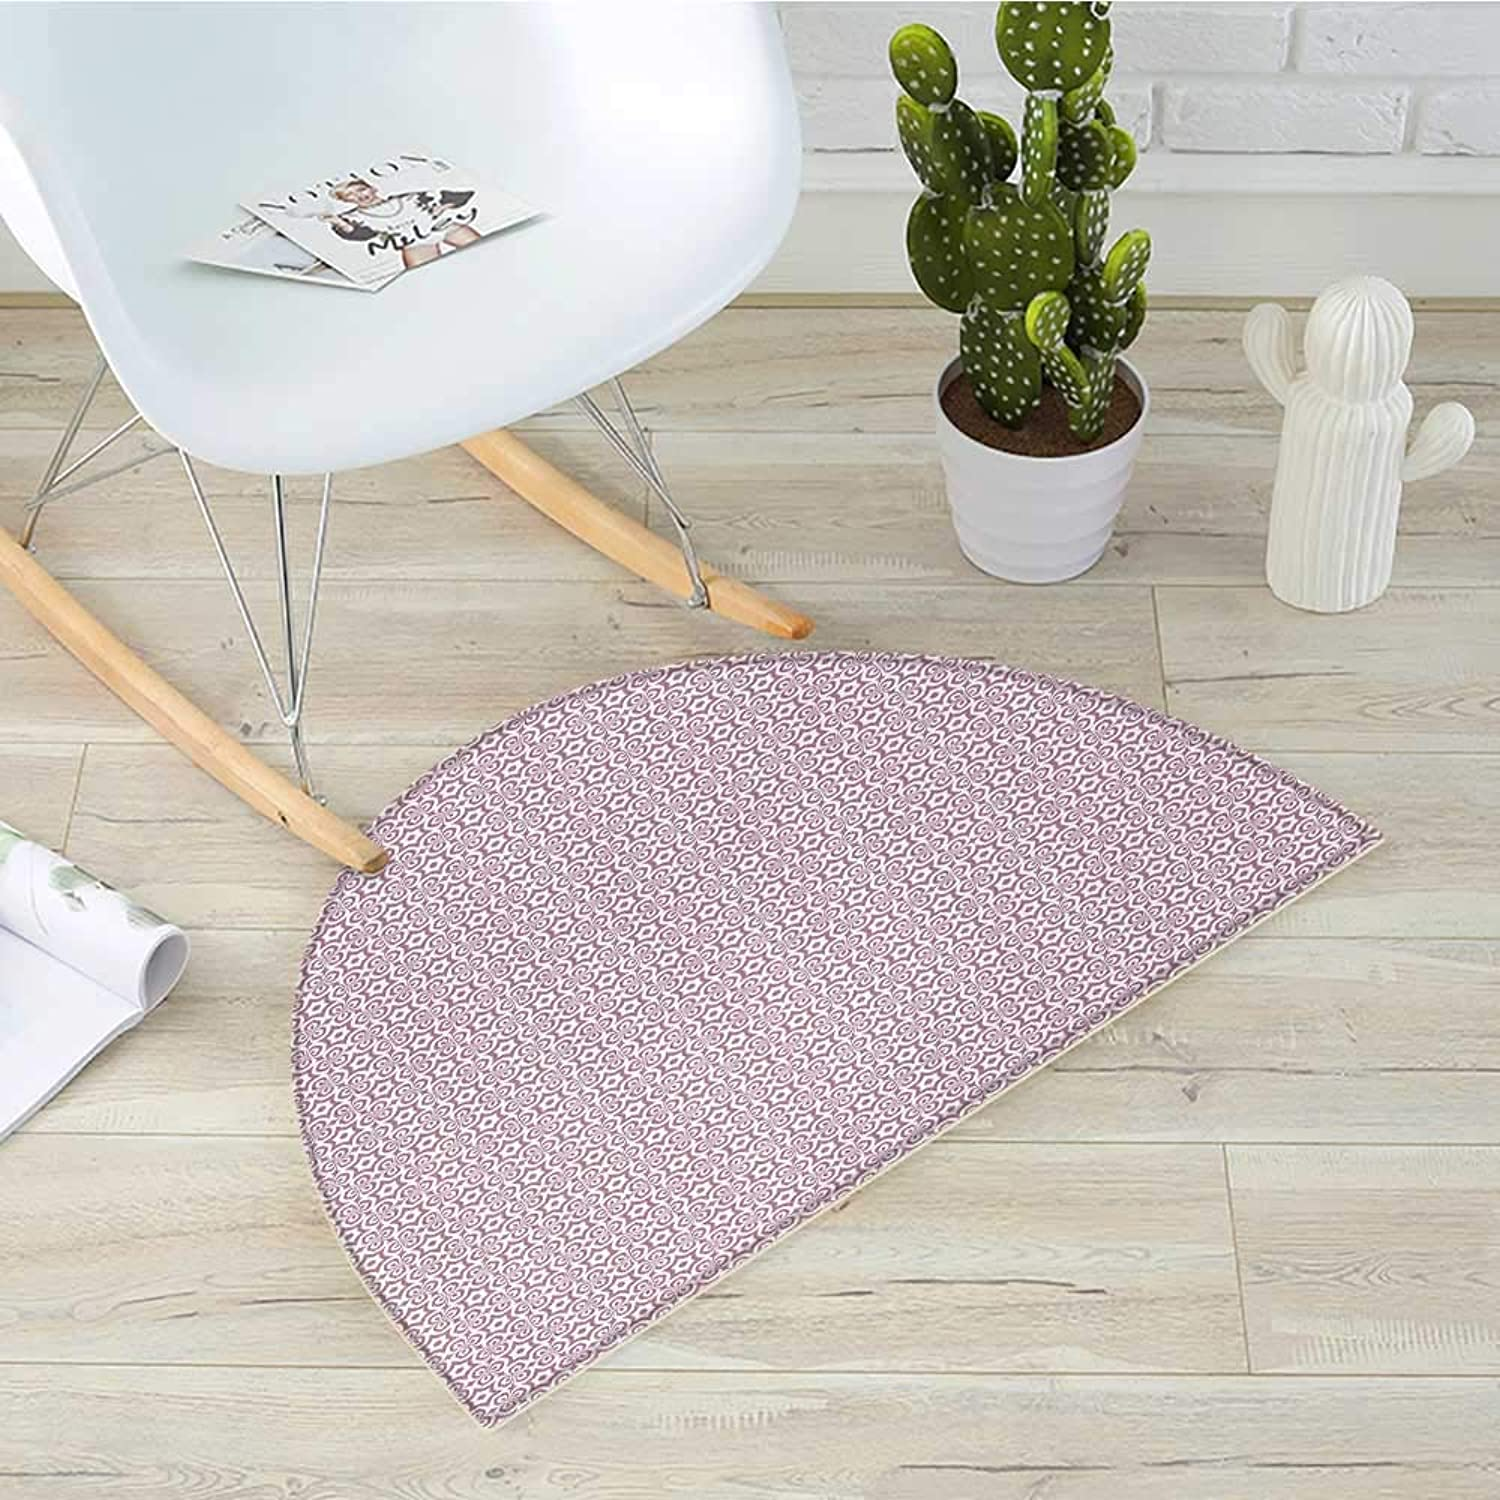 Geometric Half Round Door mats Six Pointed Star Motif with Hexagon Illustration Timeless Oriental Motifs Bathroom Mat H 35.4  xD 53.1  Dried pink White